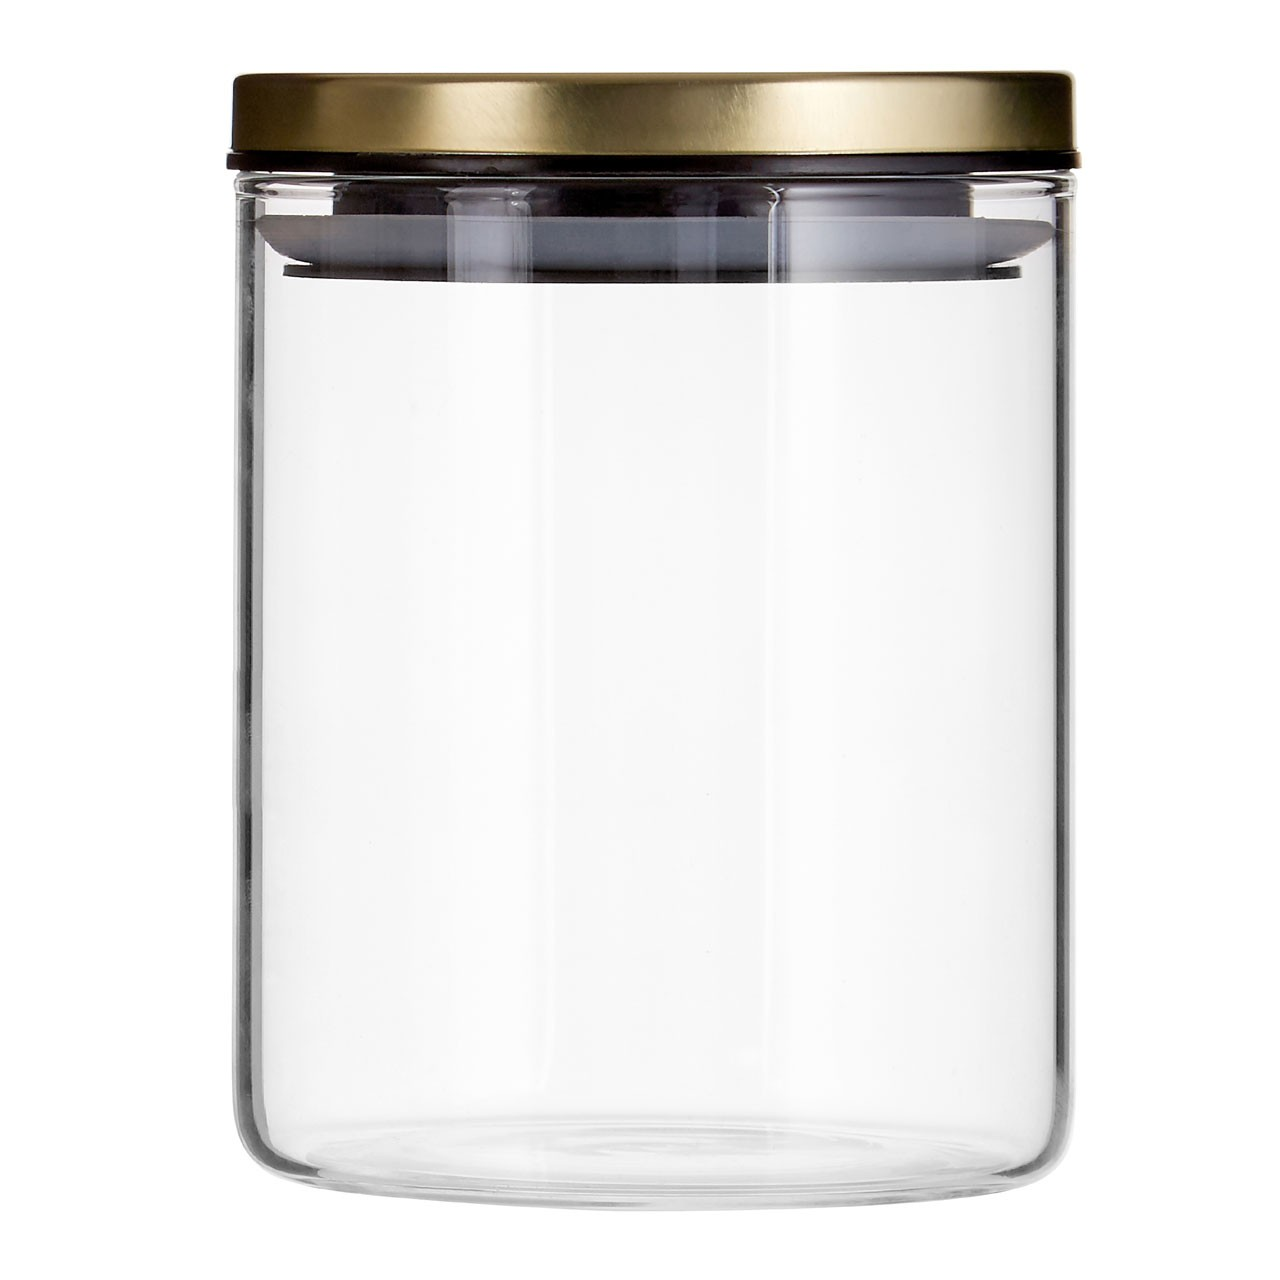 Prime Furnishing Freska Round Glass Storage Jar, 700 ml, Gold